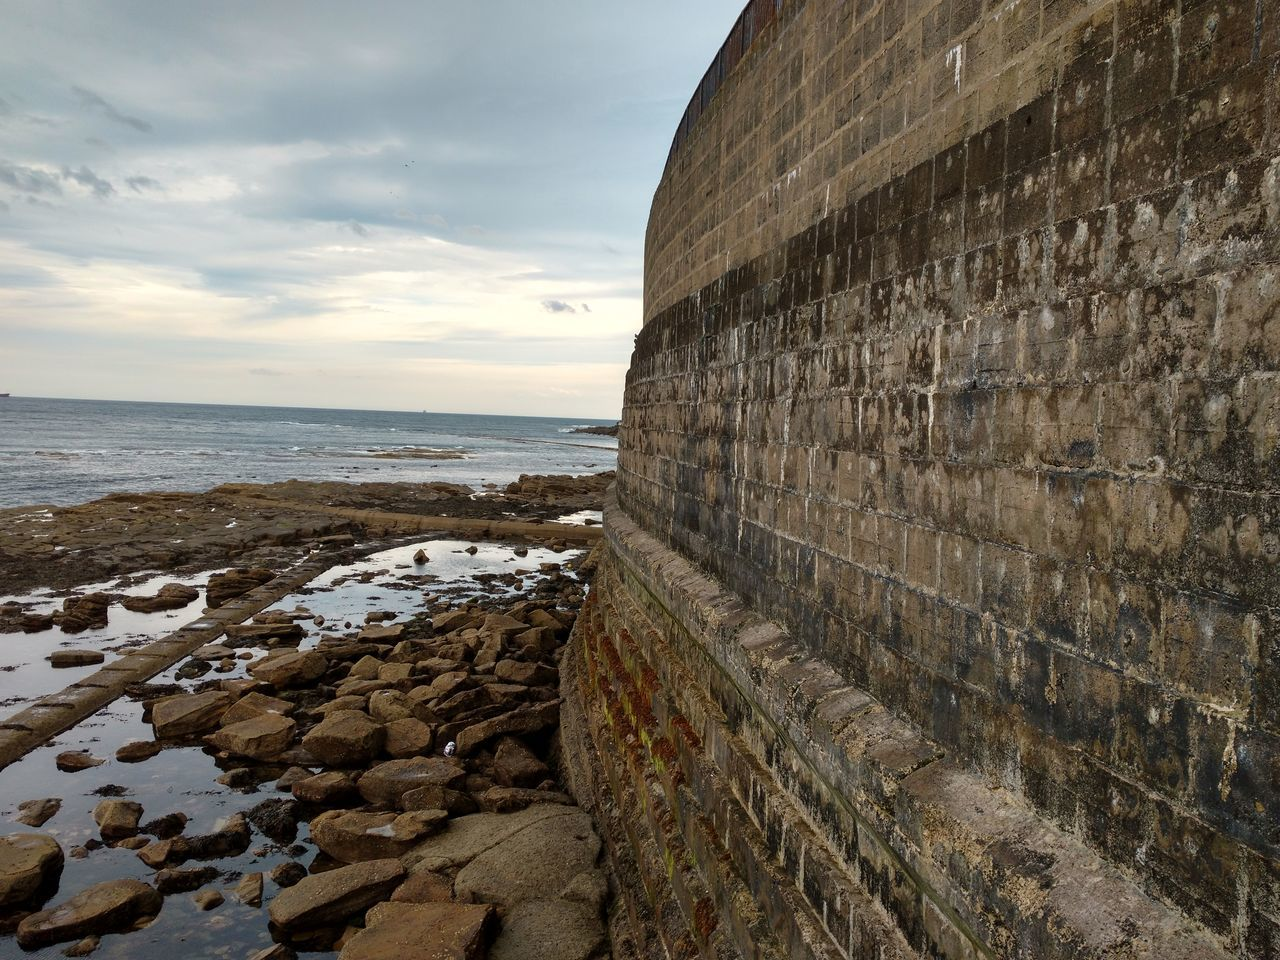 sea, water, horizon over water, sky, nature, cloud - sky, scenics, tranquility, built structure, outdoors, day, architecture, beauty in nature, tranquil scene, travel destinations, no people, beach, groyne